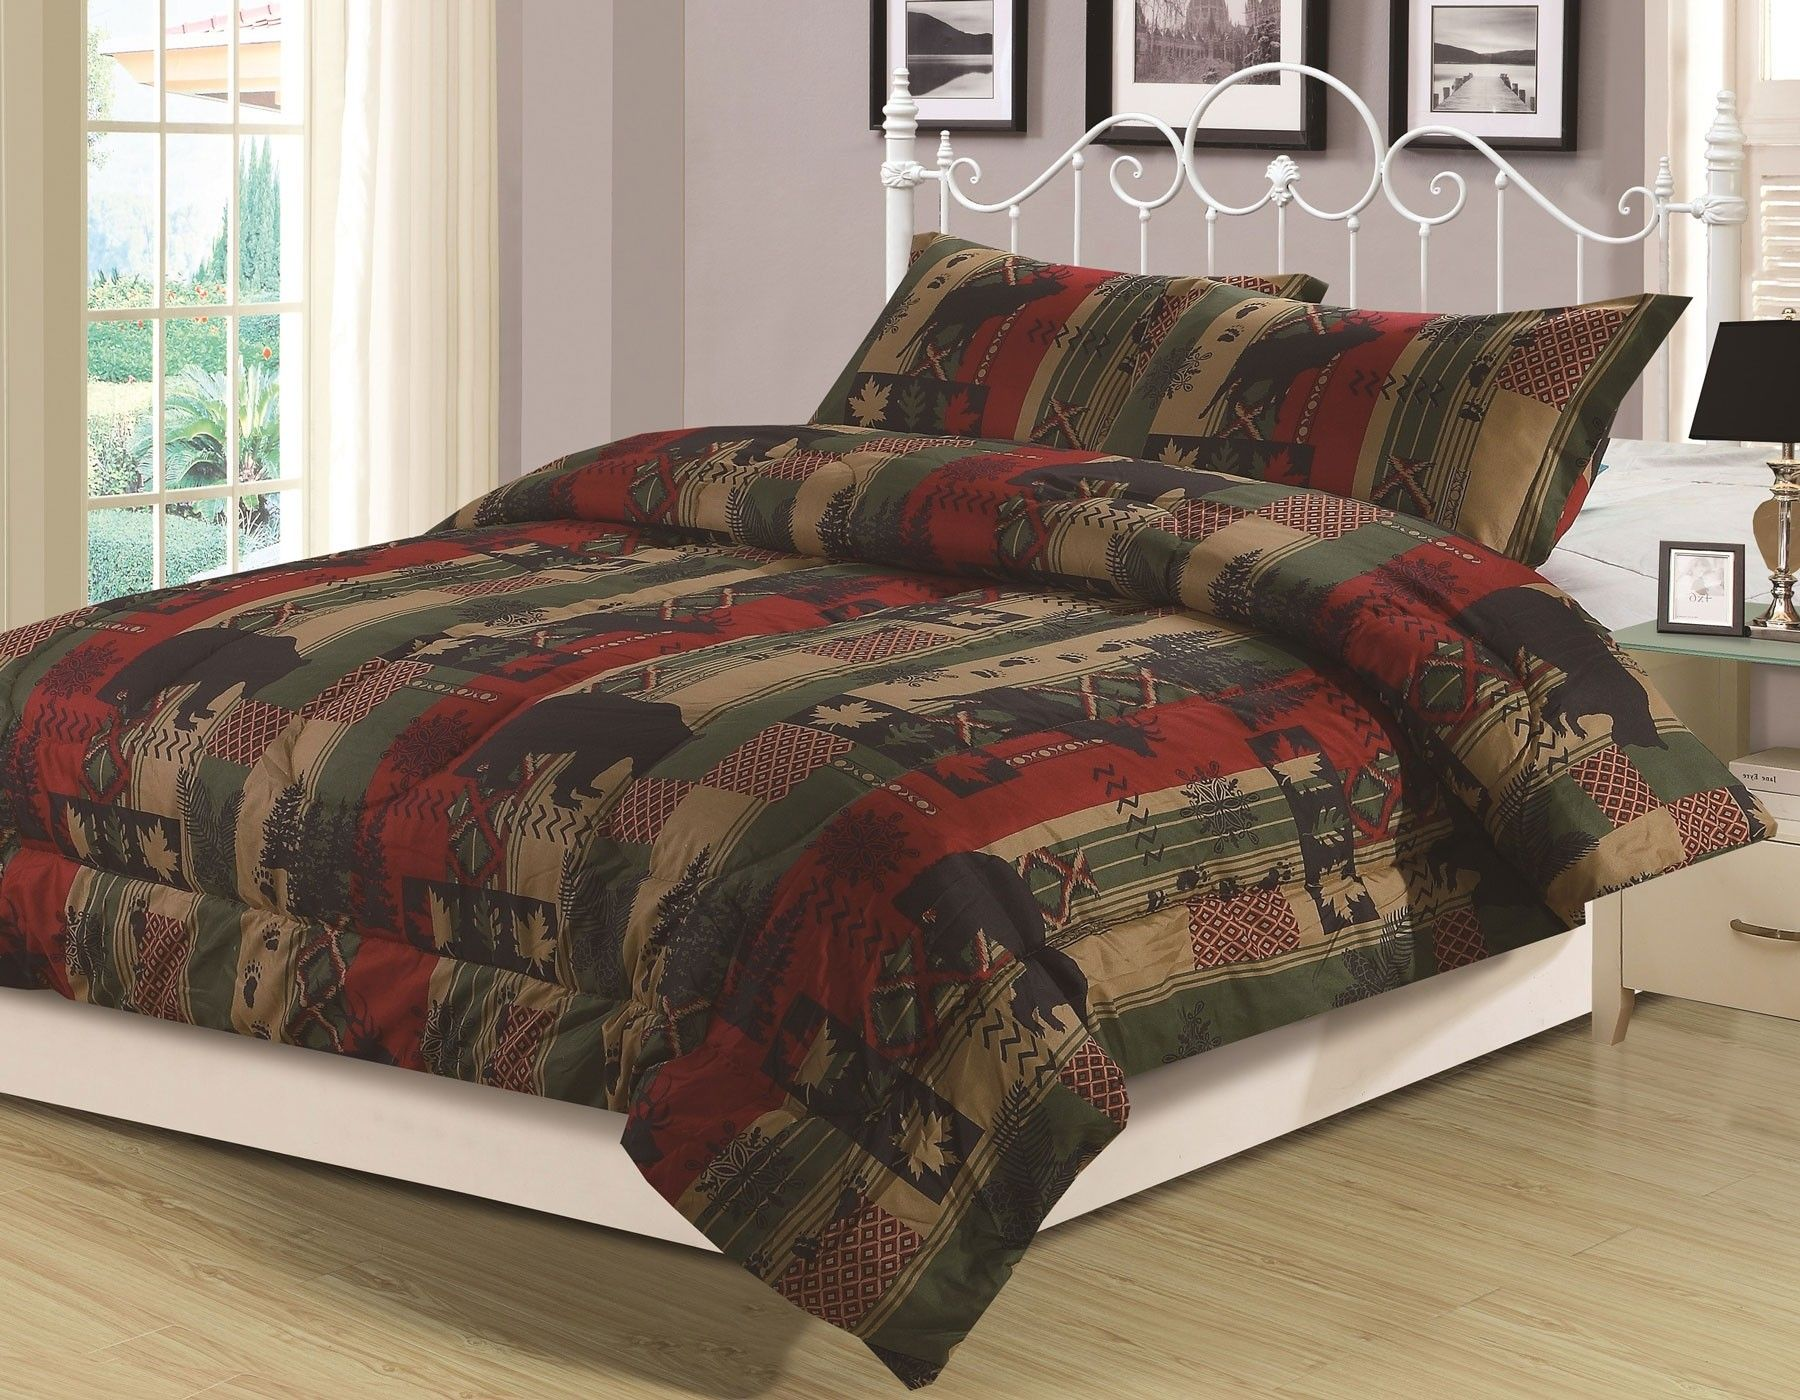 cabin rustic cabins laural today overstock free comforters shipping bedding bath comforter product home